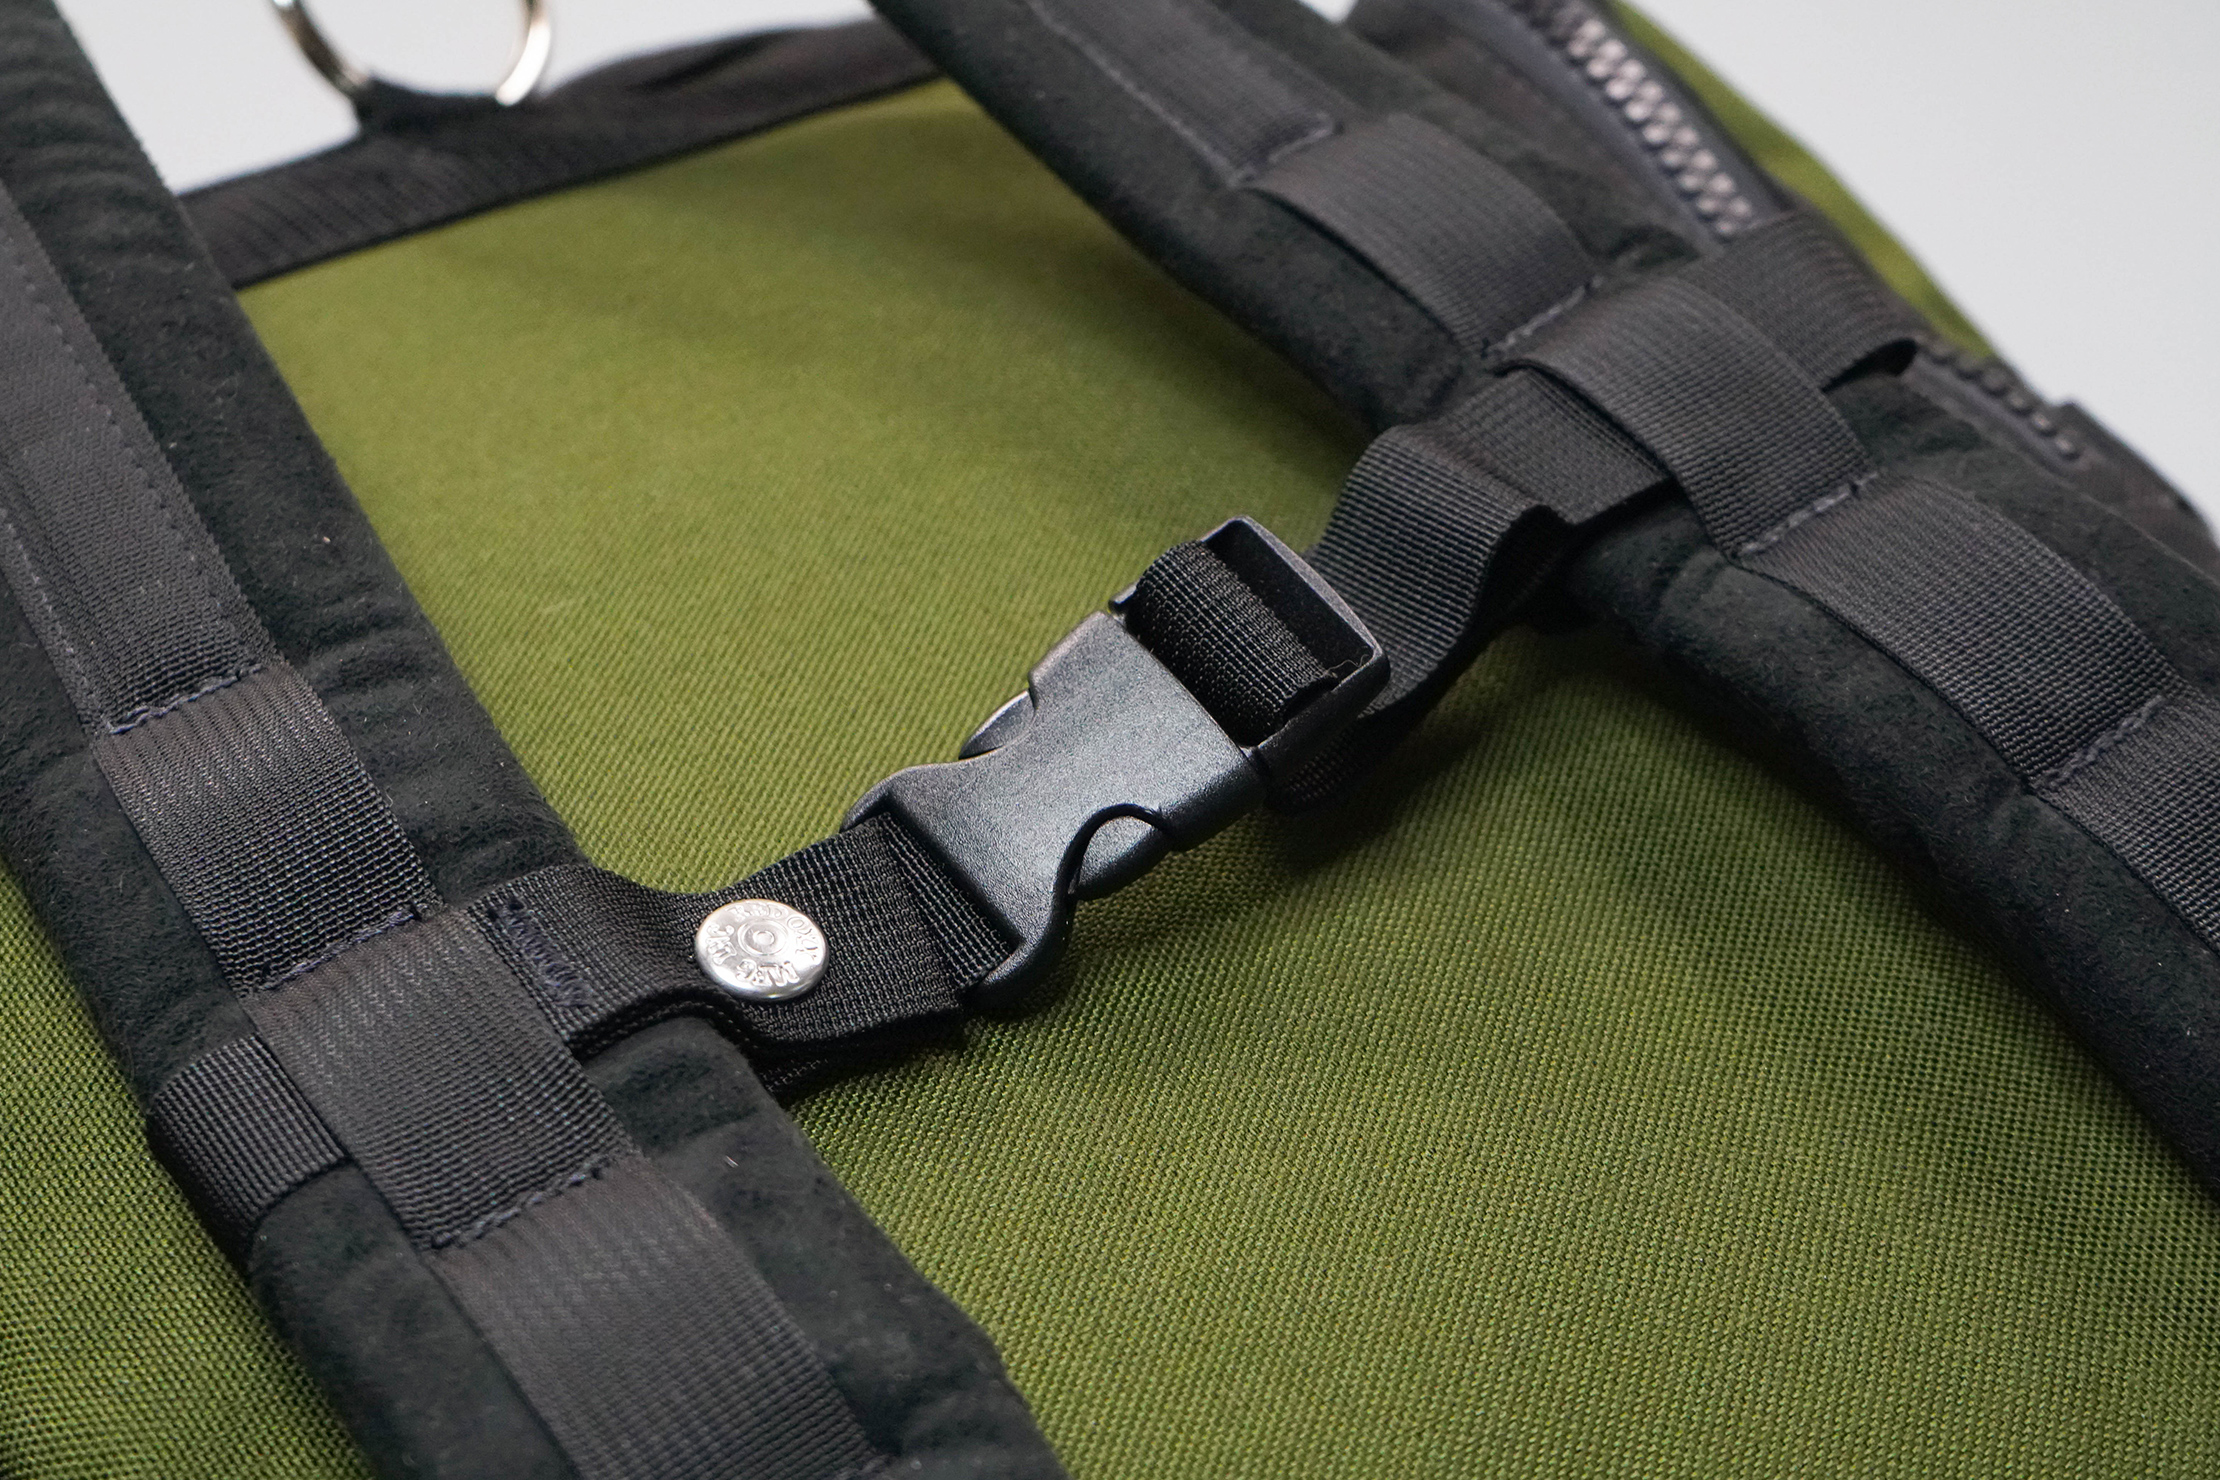 Red Oxx C-Ruck Carry-On Rucksack Sternum Strap